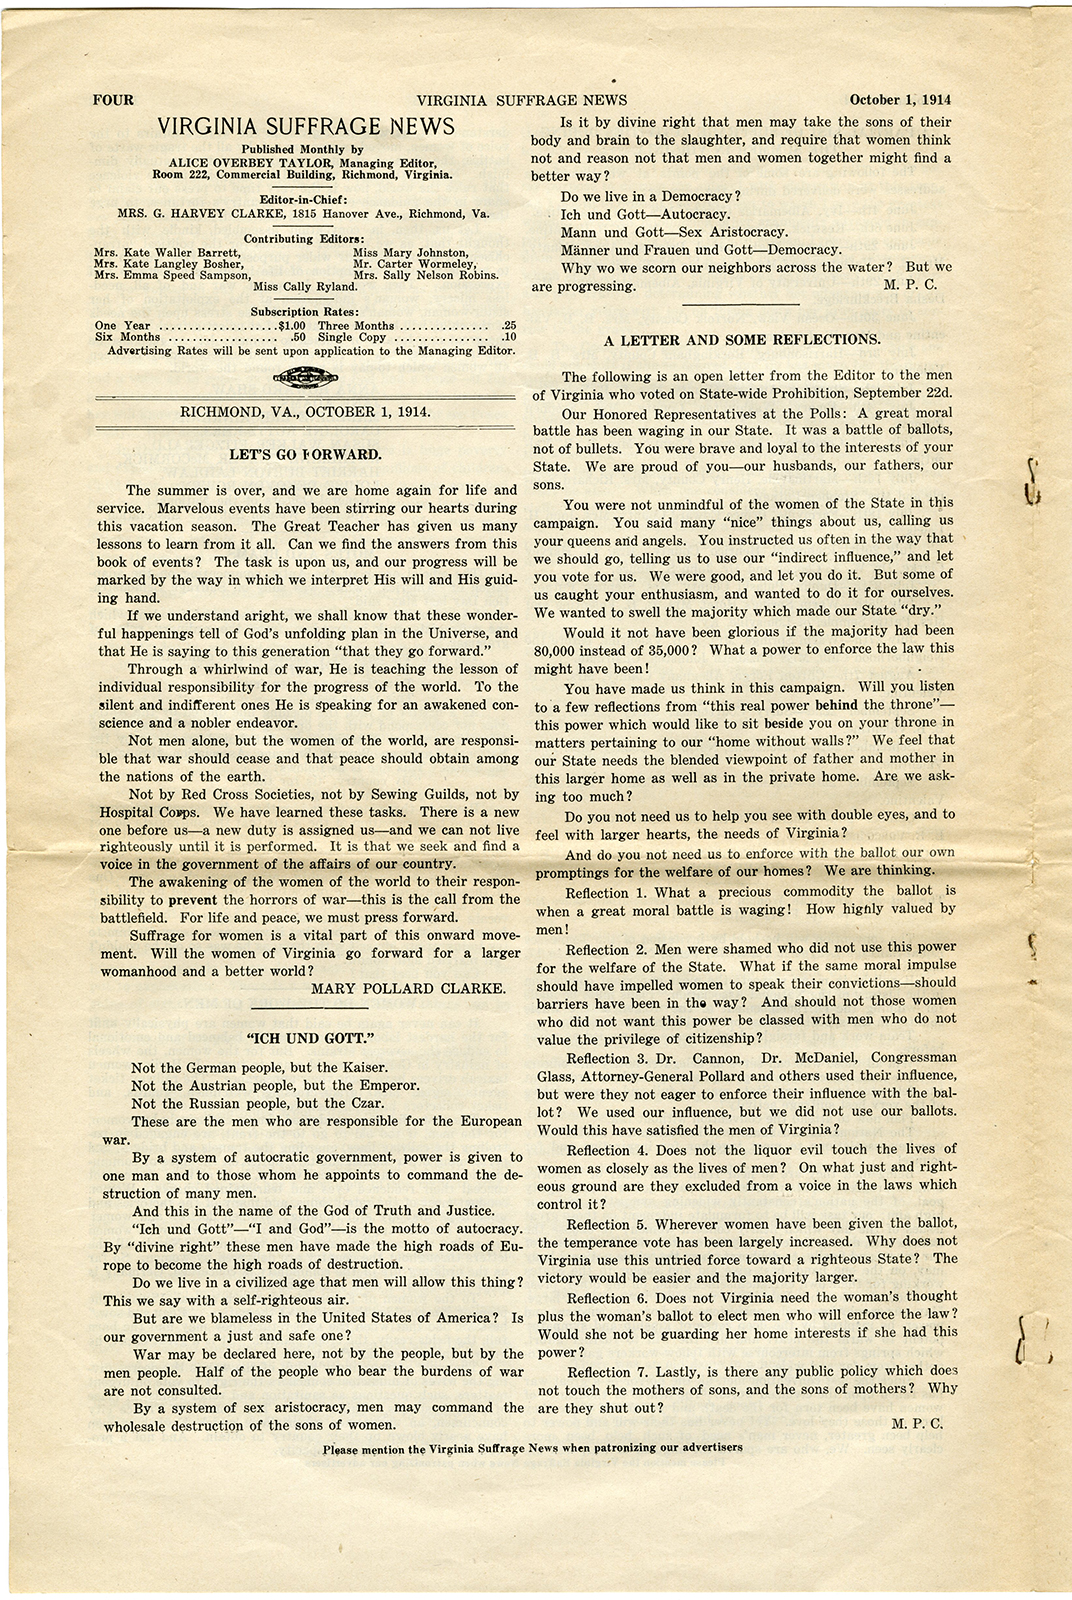 VCU_M9 B56 Virginia Suffrage News Oct 1 1914 p4 rsz.jpg